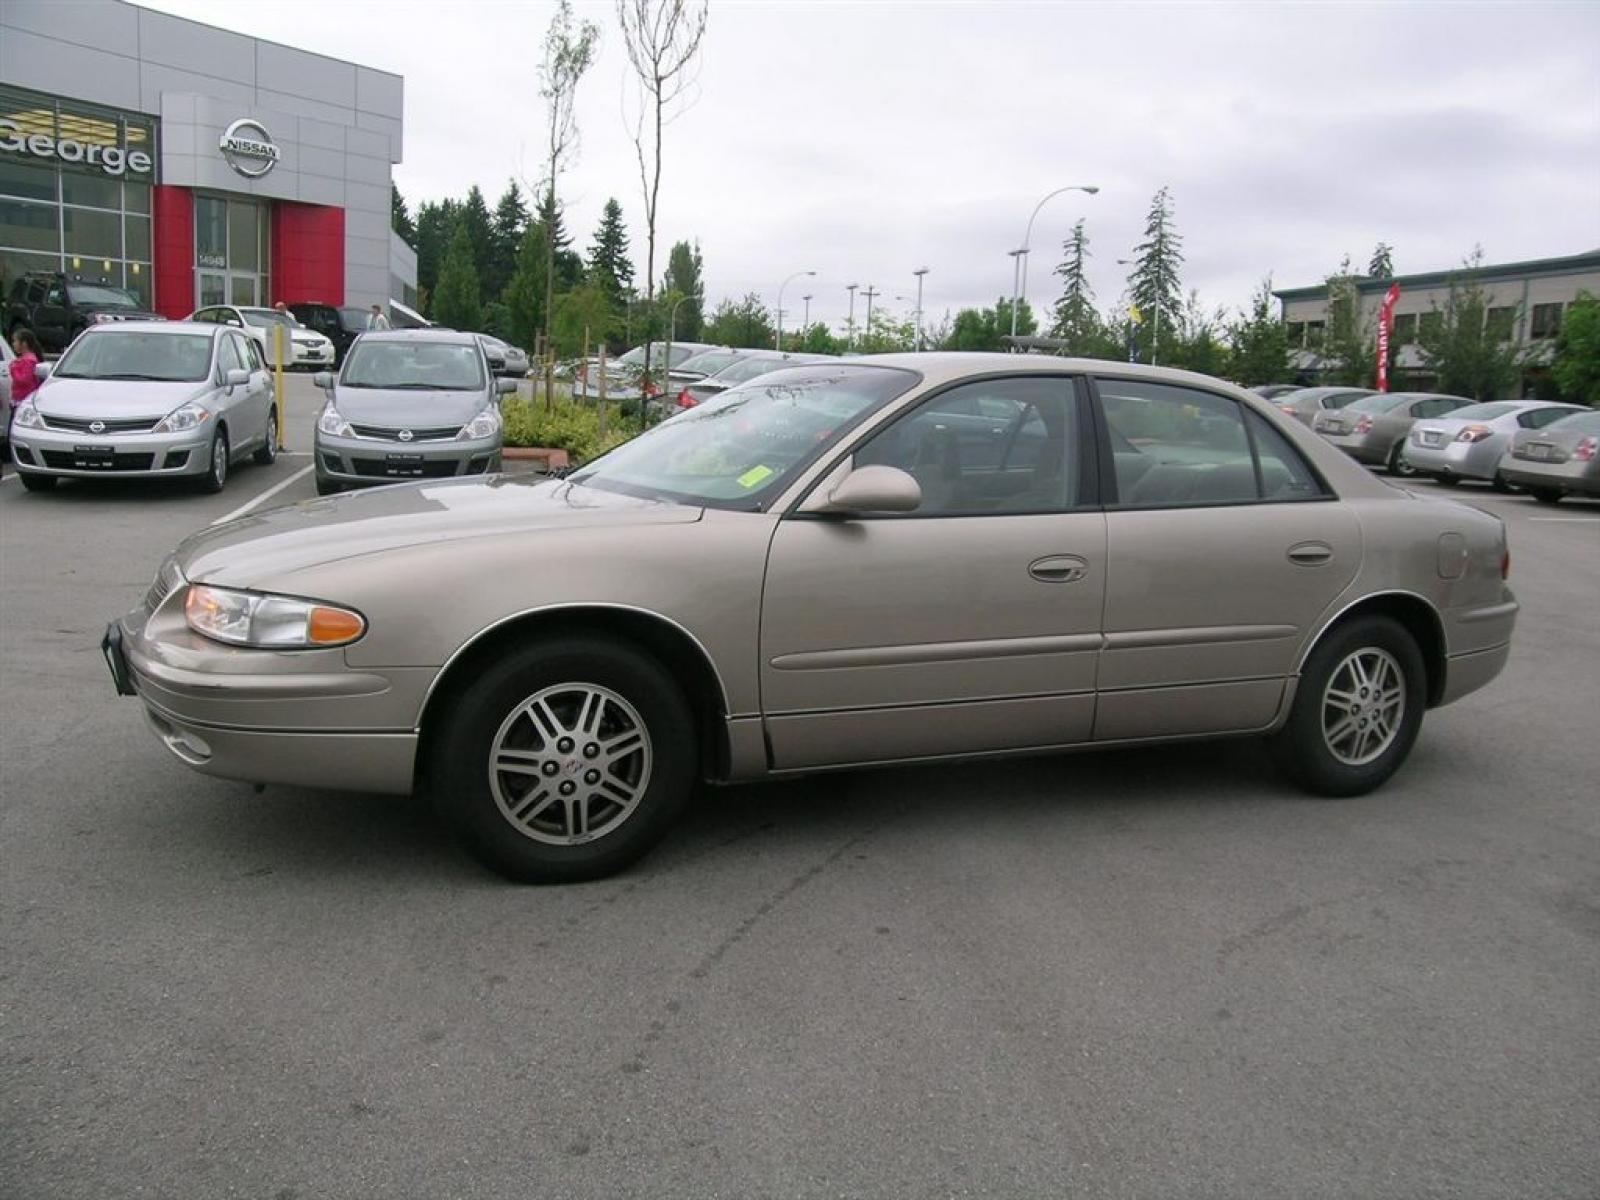 2002 Buick Regal - Information and photos - Zomb Drive